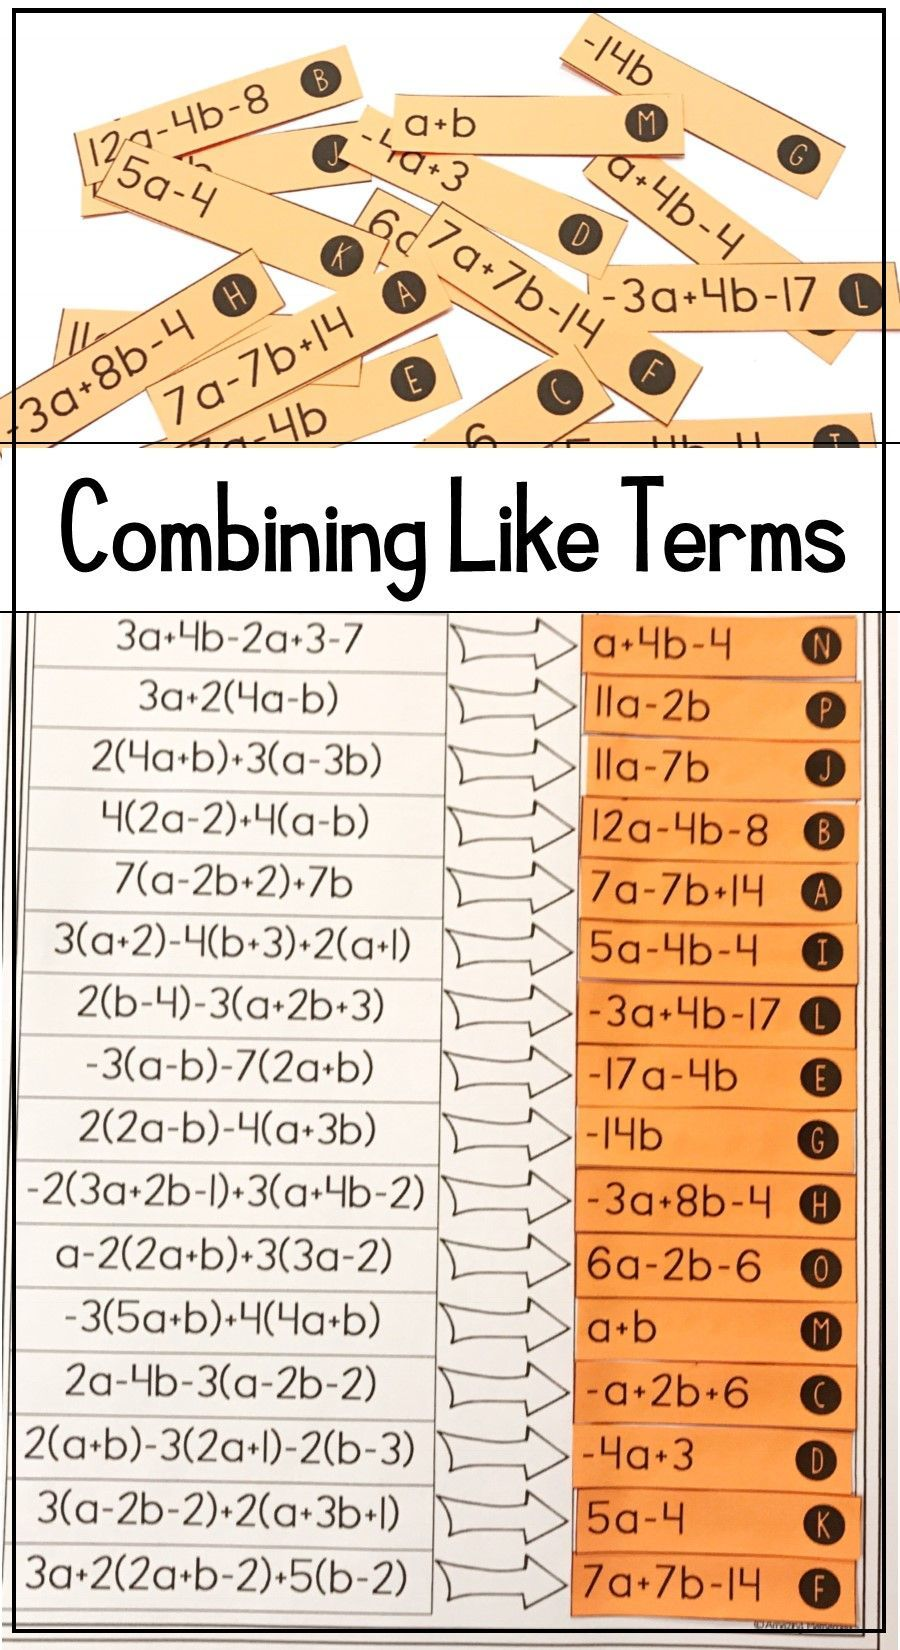 Combining Like Terms And Simplifying Expressions Matching Activity Worksheet Combining Like Terms Like Terms Simplifying Expressions